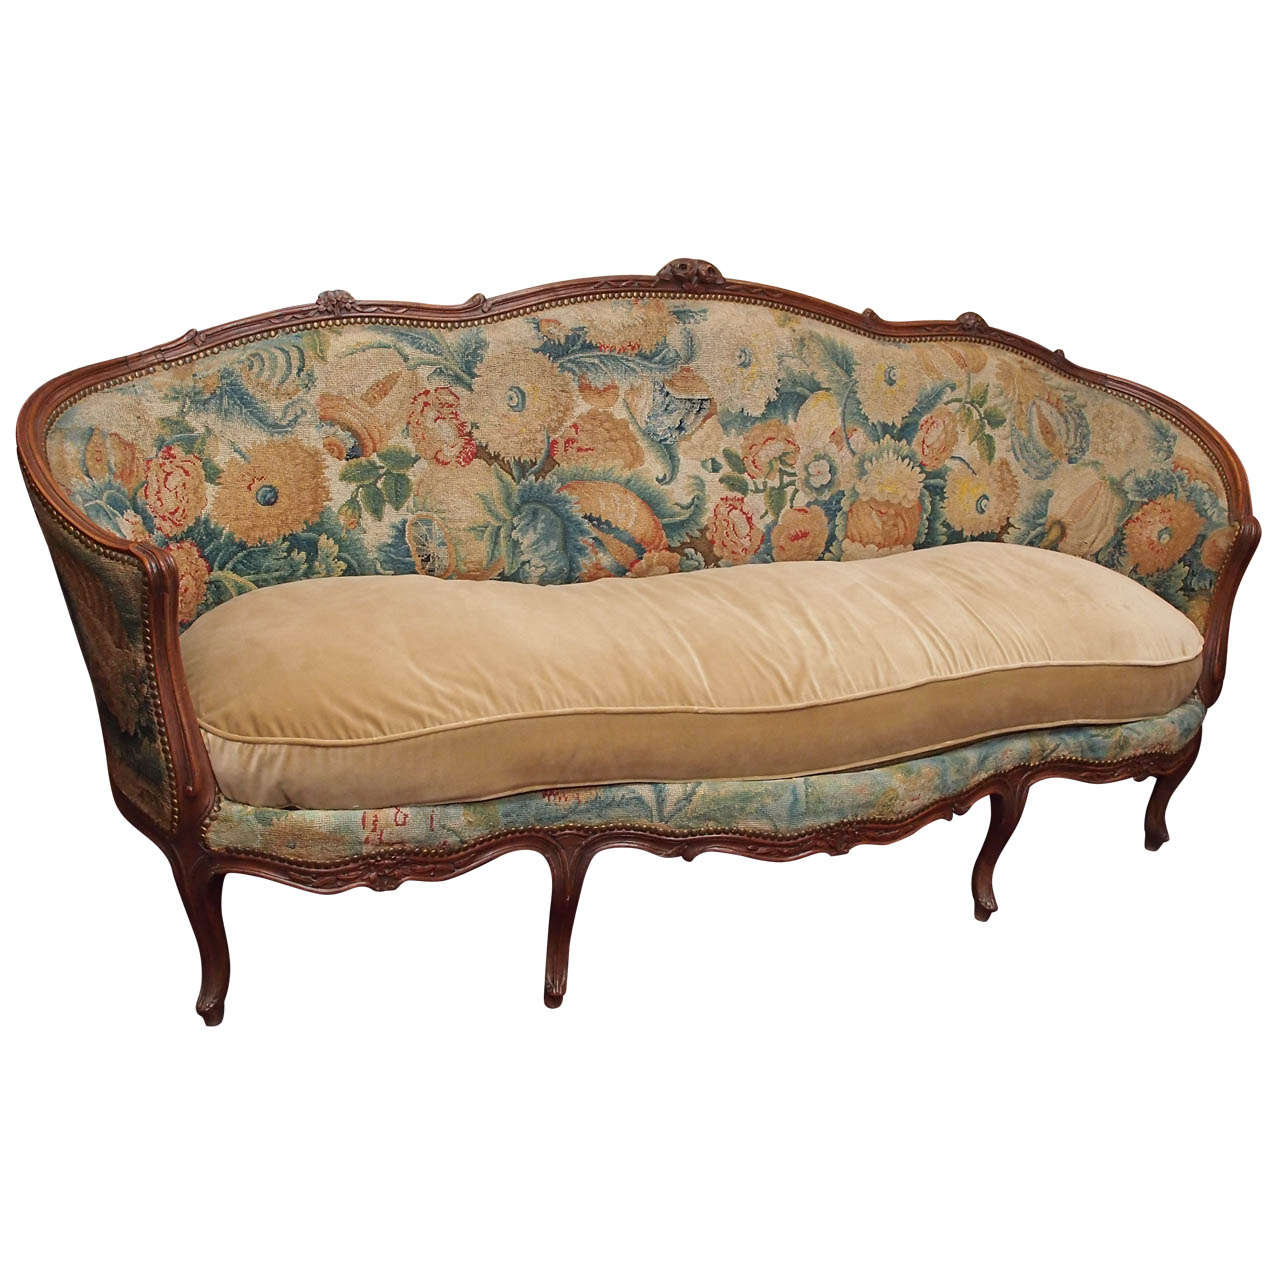 French louis xv walnut canape for sale at 1stdibs for Canape for sale